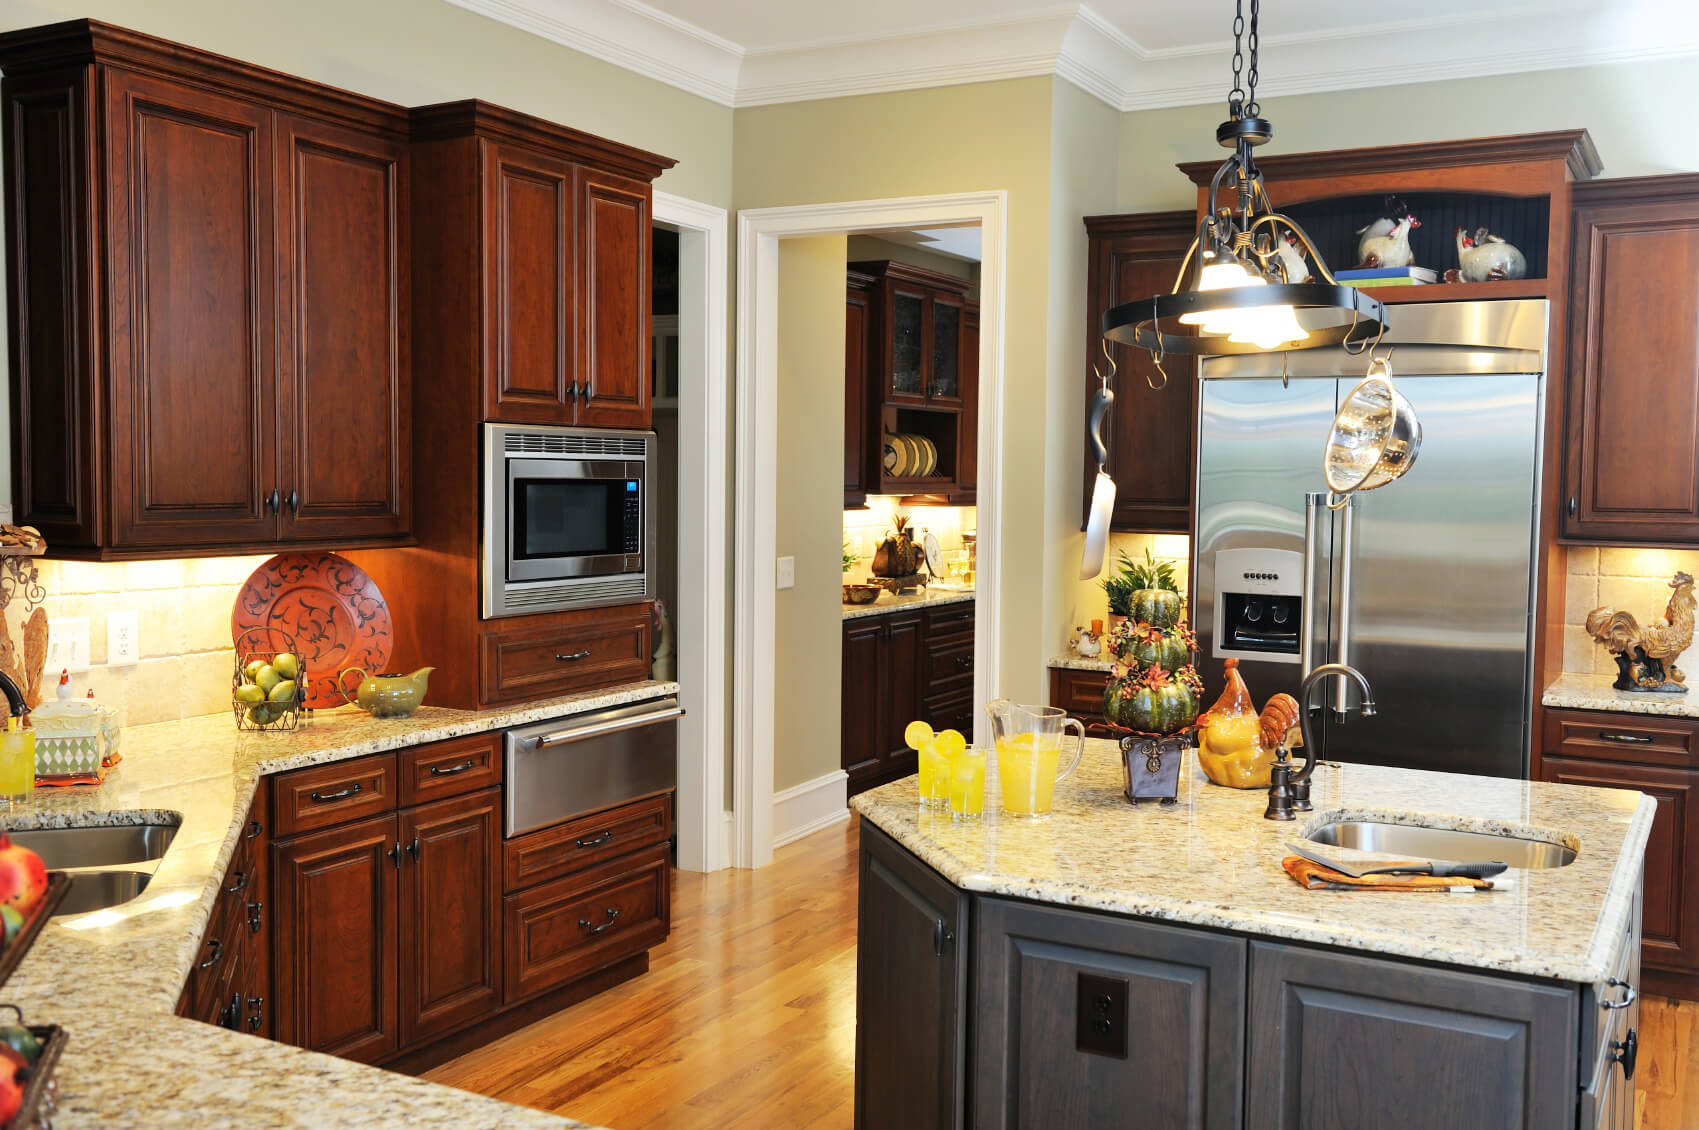 Cozy Kitchen Featuring Mixture Of Wood Tones, From Light Natural Flooring,  To Dark Cherry